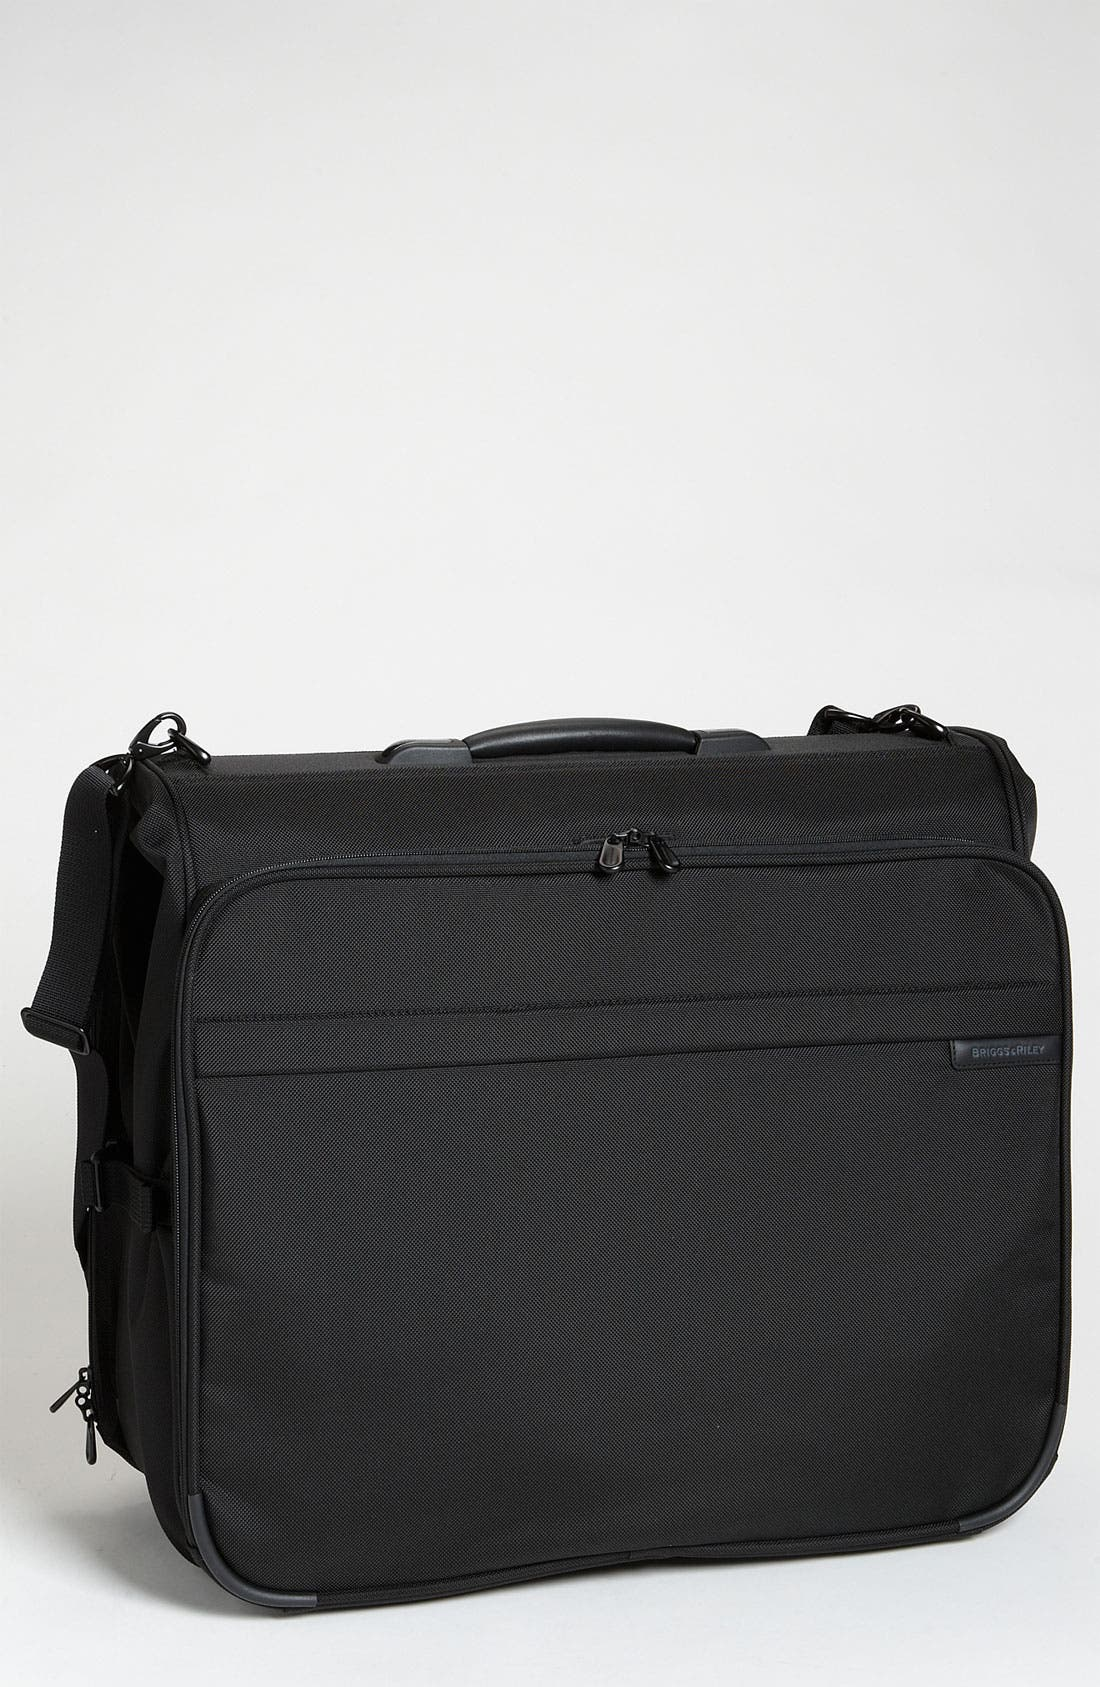 BRIGGS & RILEY Baseline - Deluxe Garment Bag